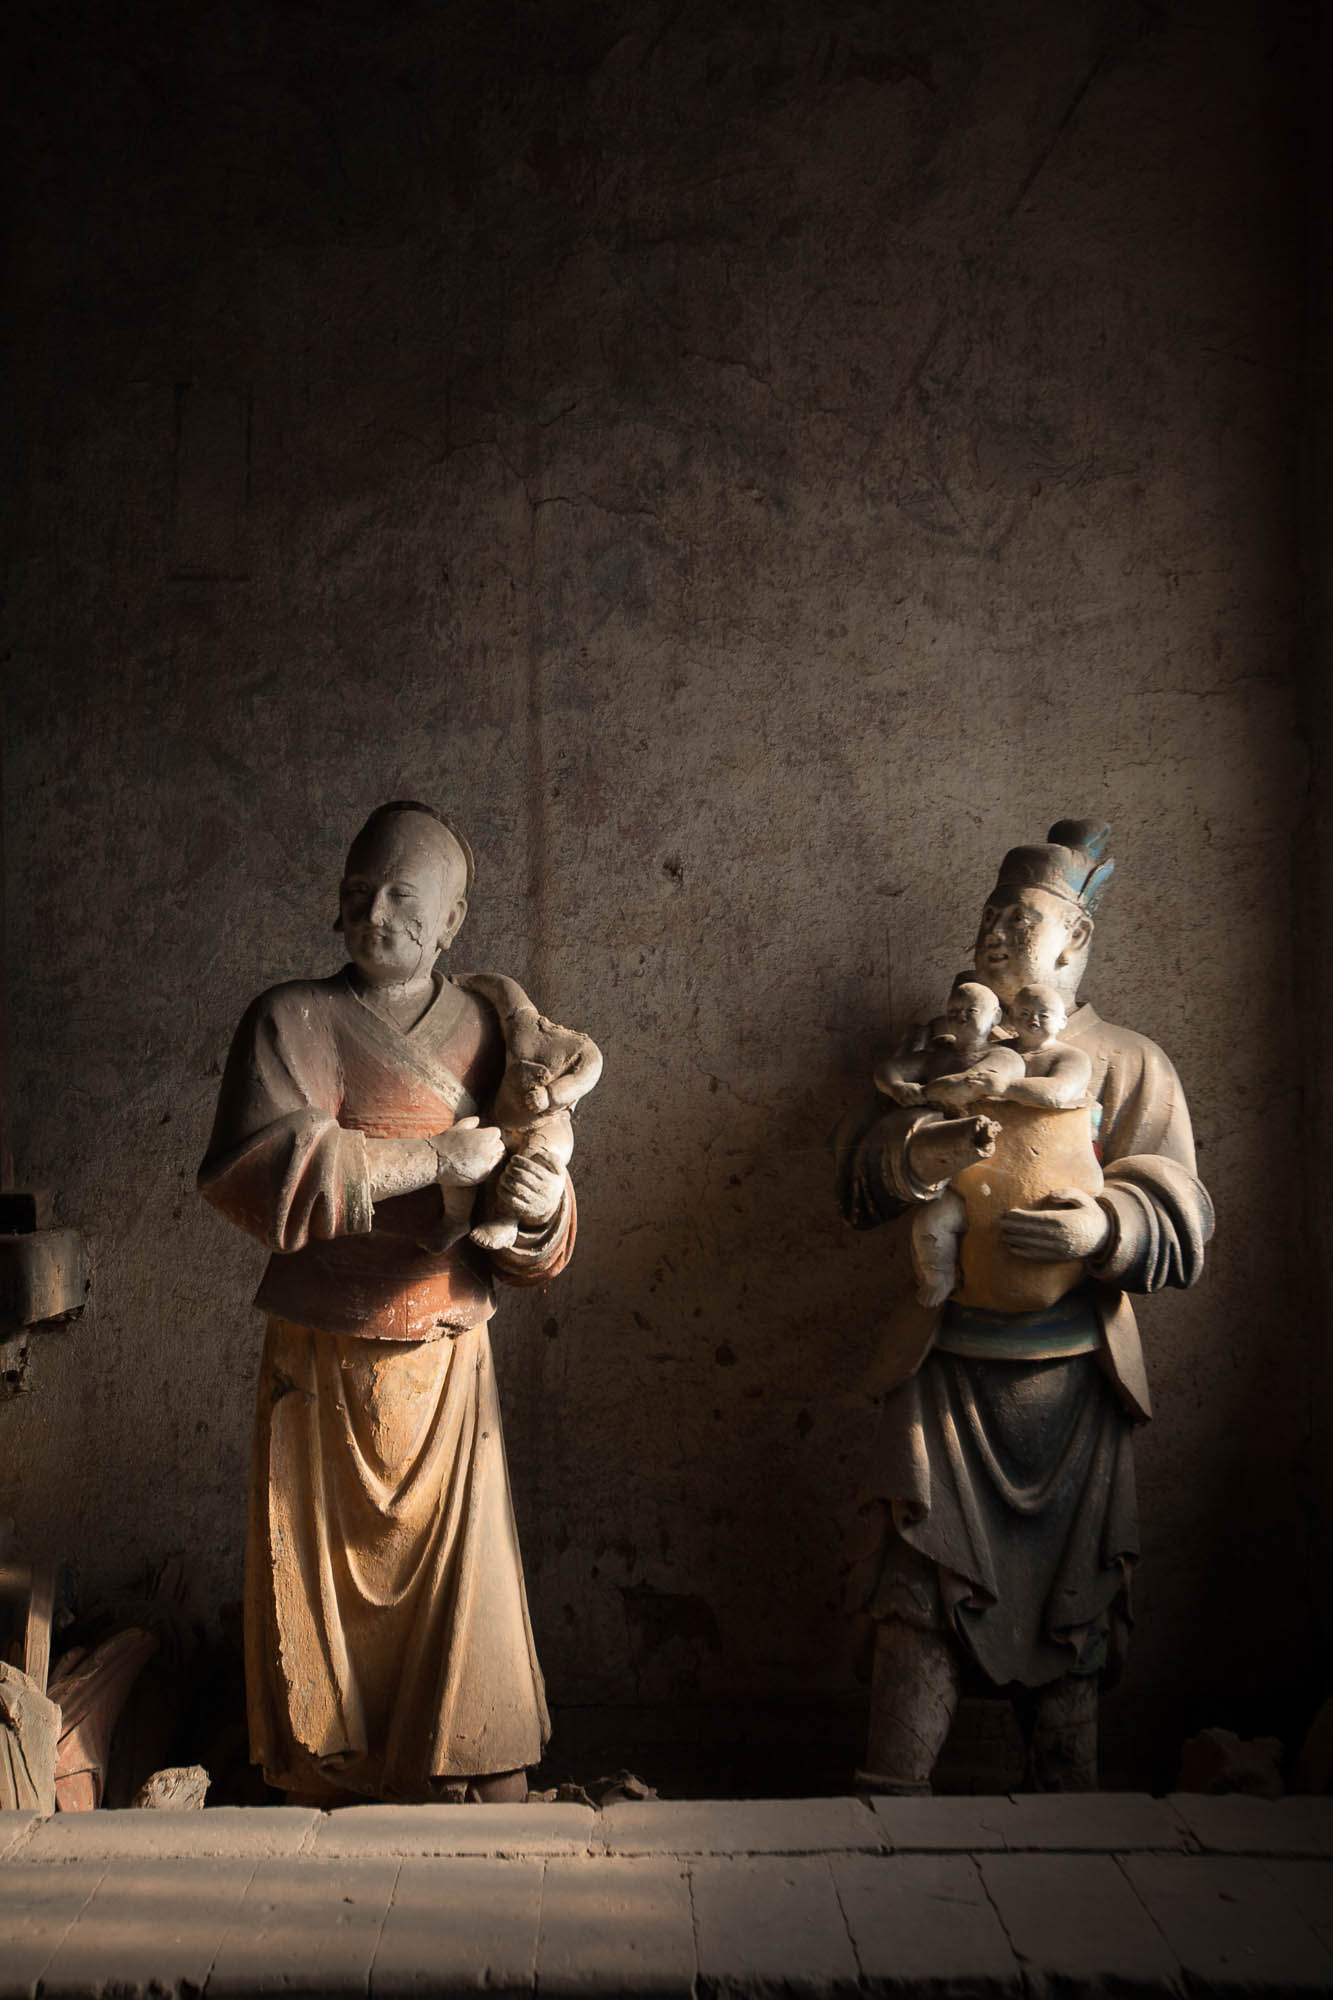 statues in Shuanglin Temple